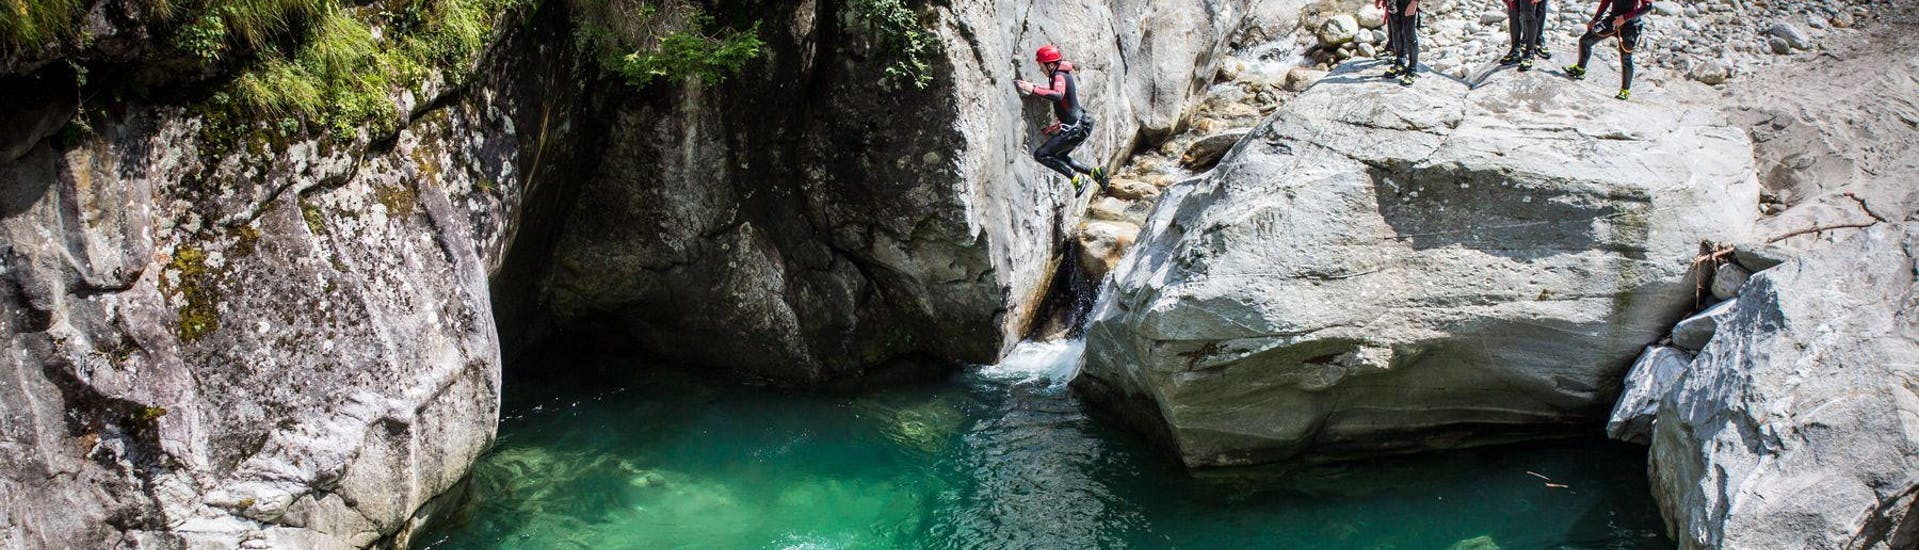 """A group of people taking part in the tour Canyoning """"White Snake"""" for Adventurers - Lake Achen with Mountain Sports Mayrhofen is jumping into a natural pool of water one by one."""